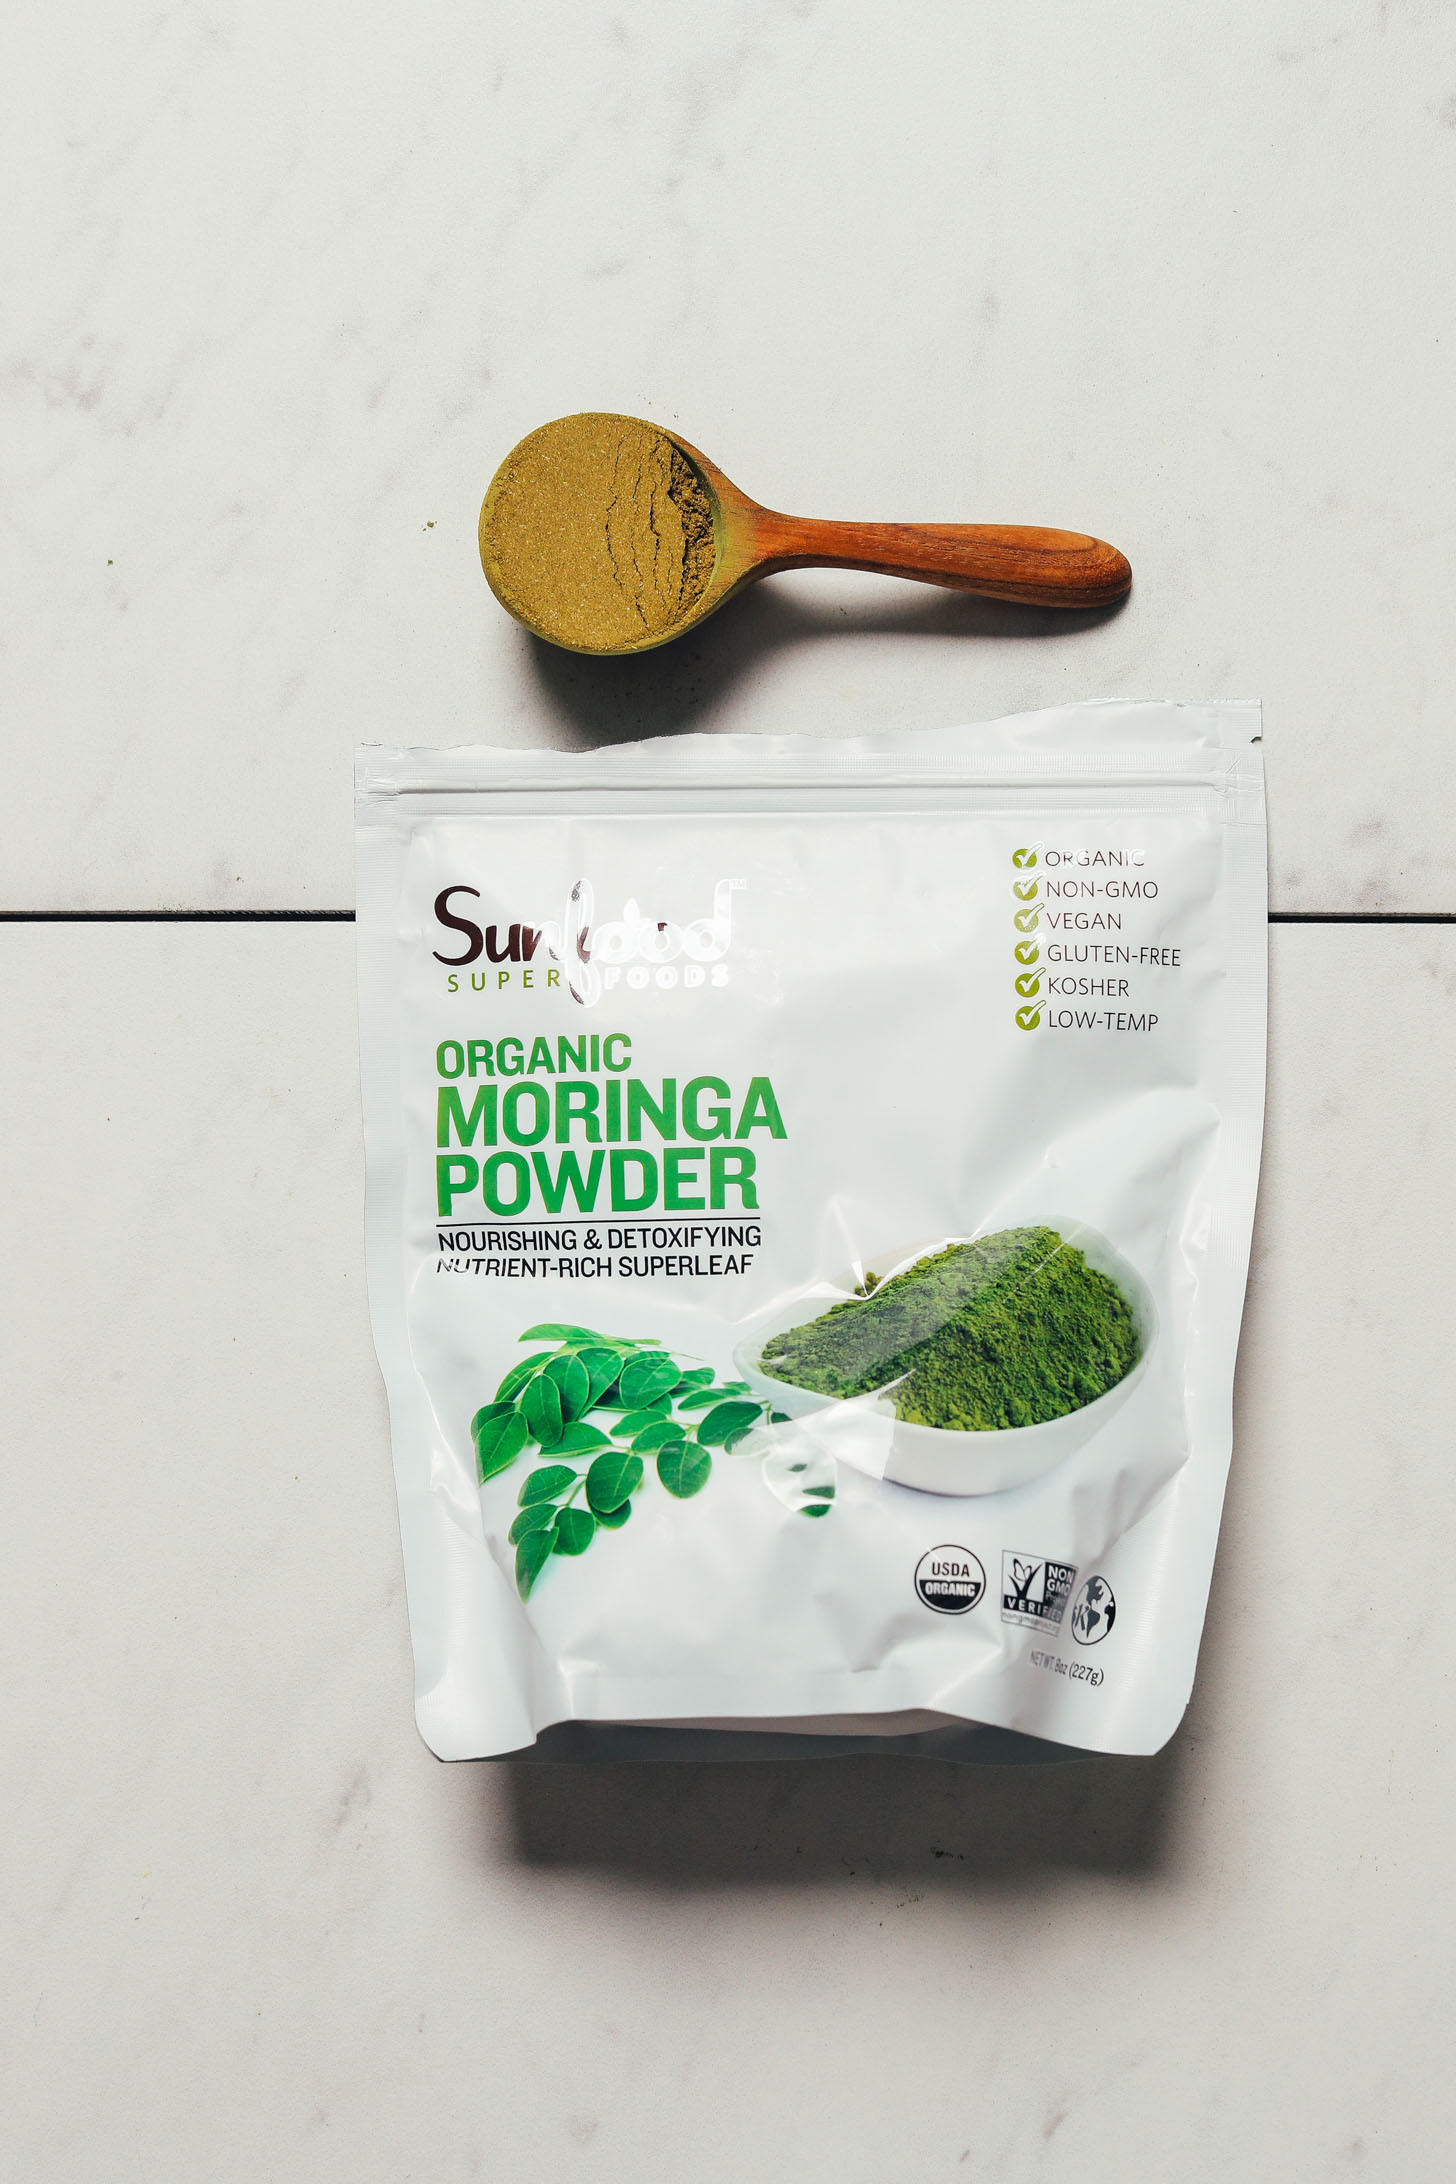 Bag and spoonful of Sunfood Moringa Powder for our review of the top moringa brands